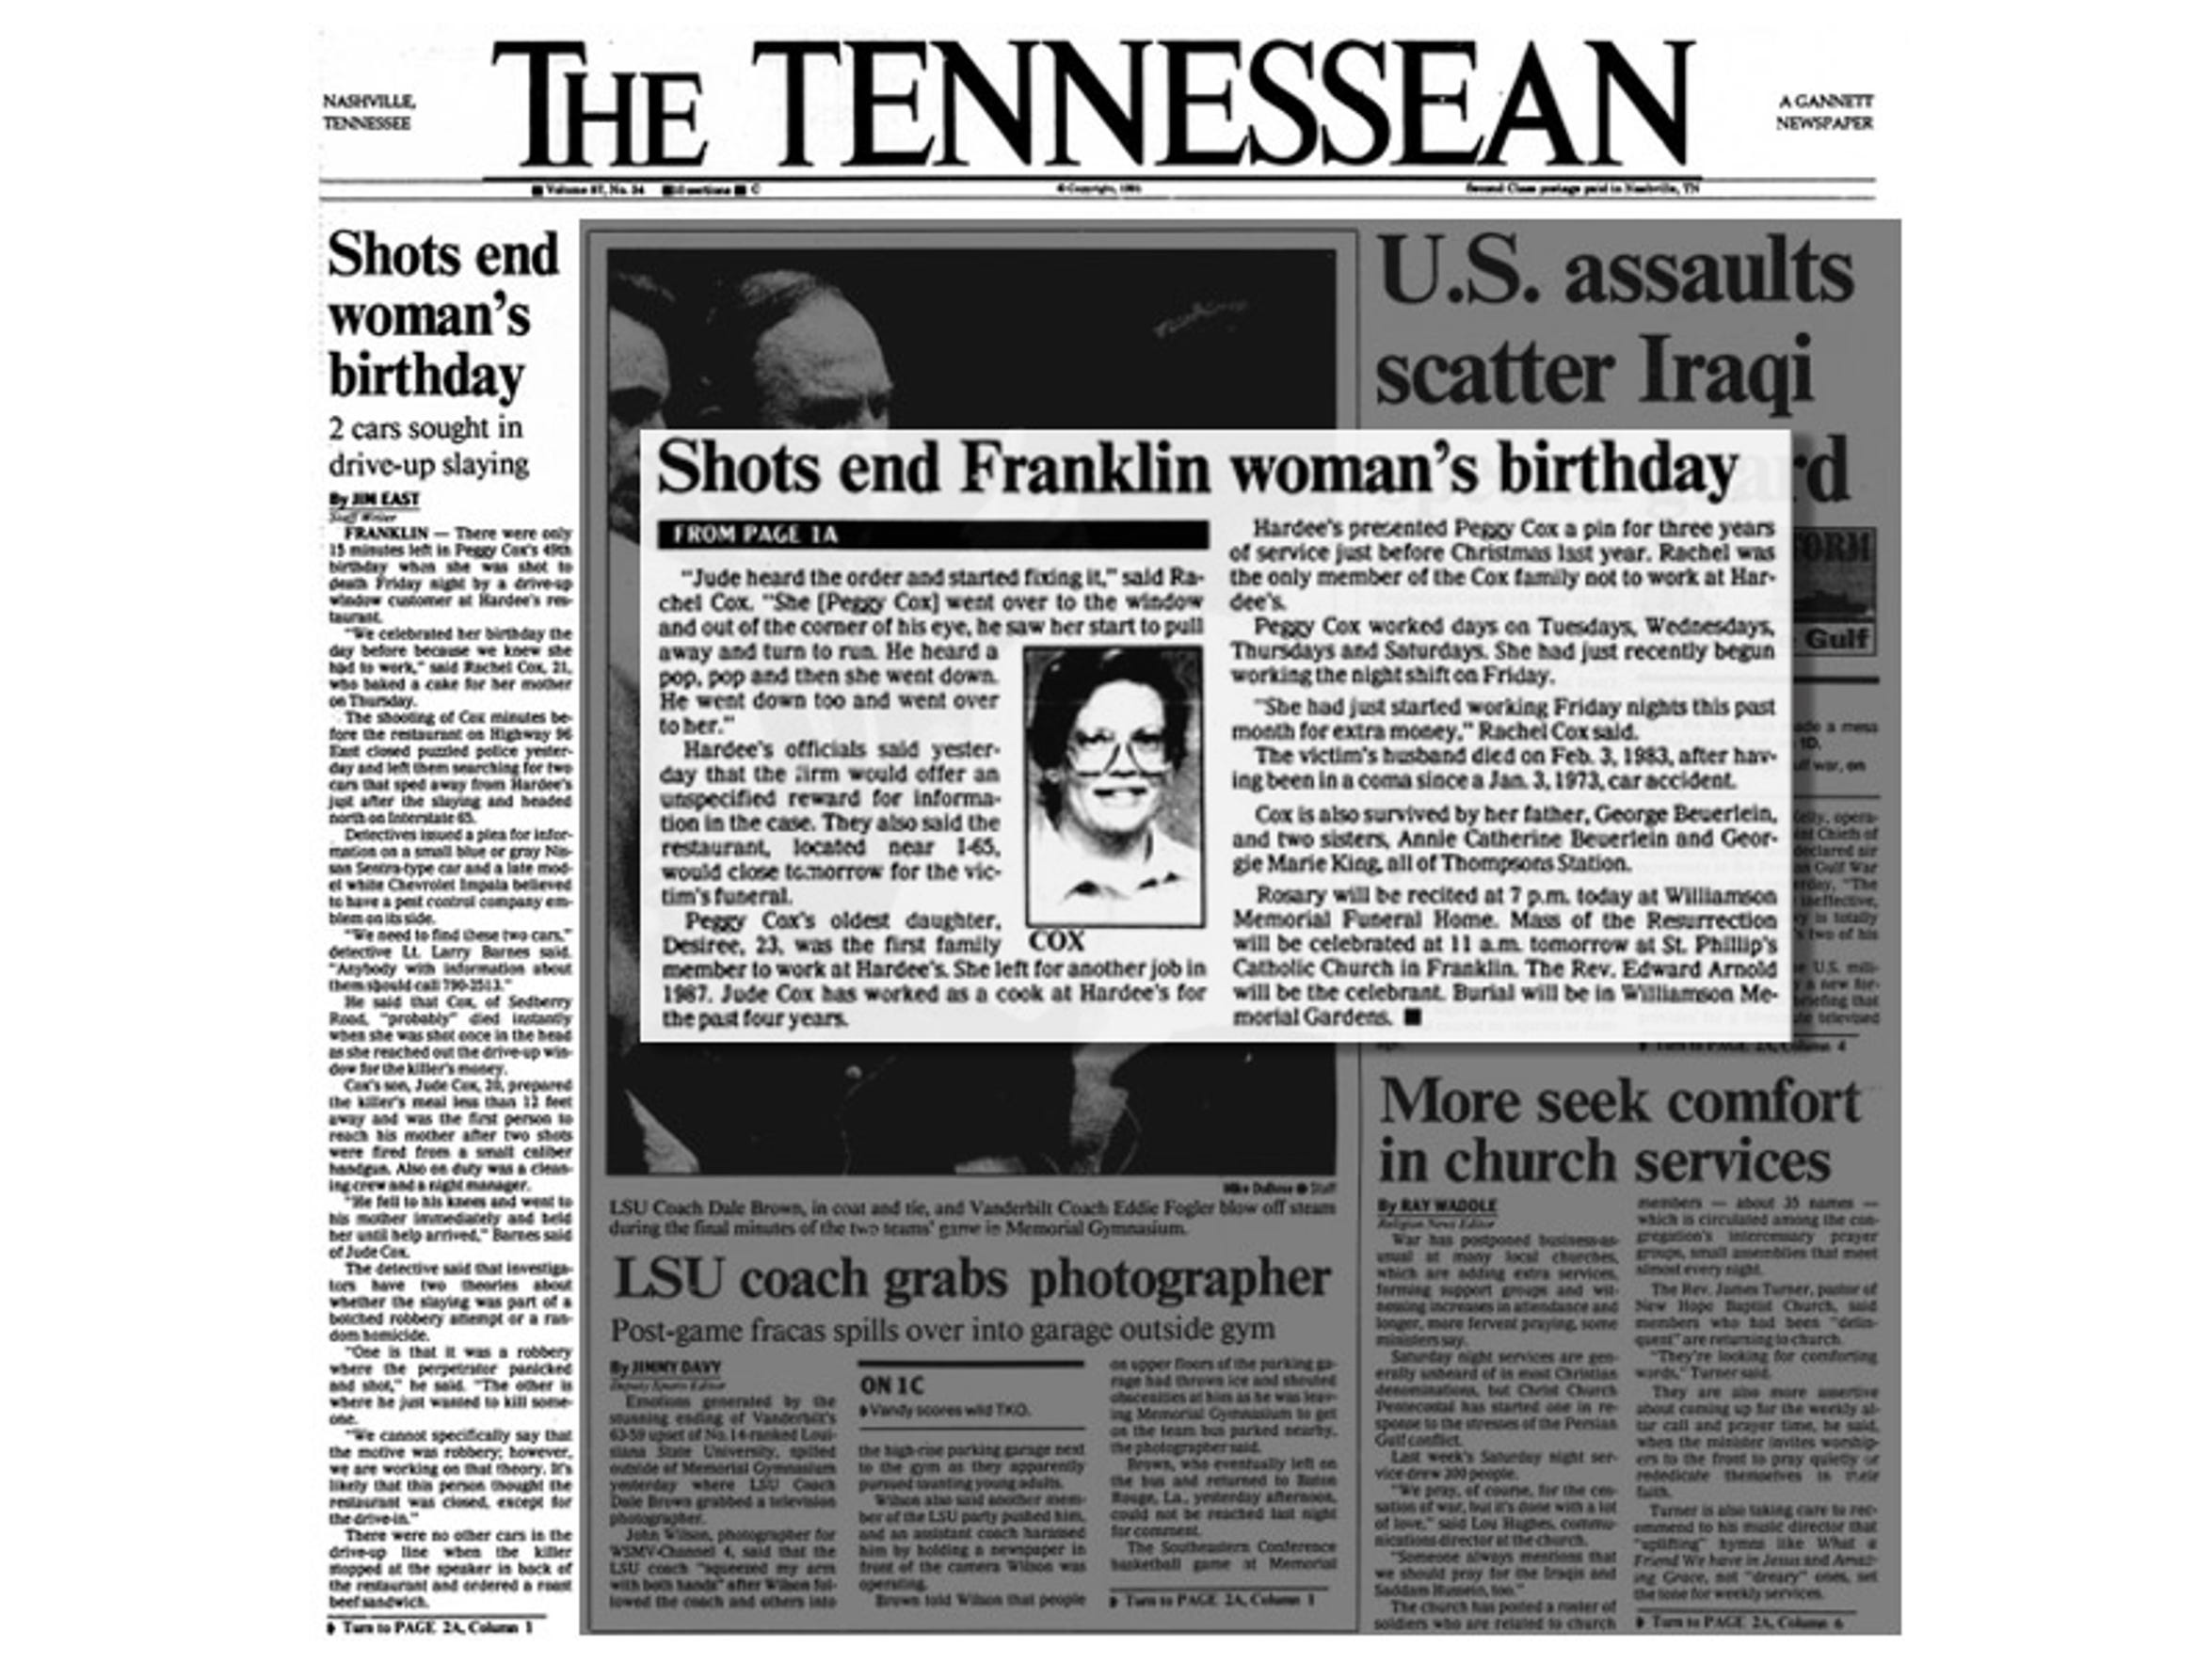 The Tennessean reports Peggy Cox's murder in an article